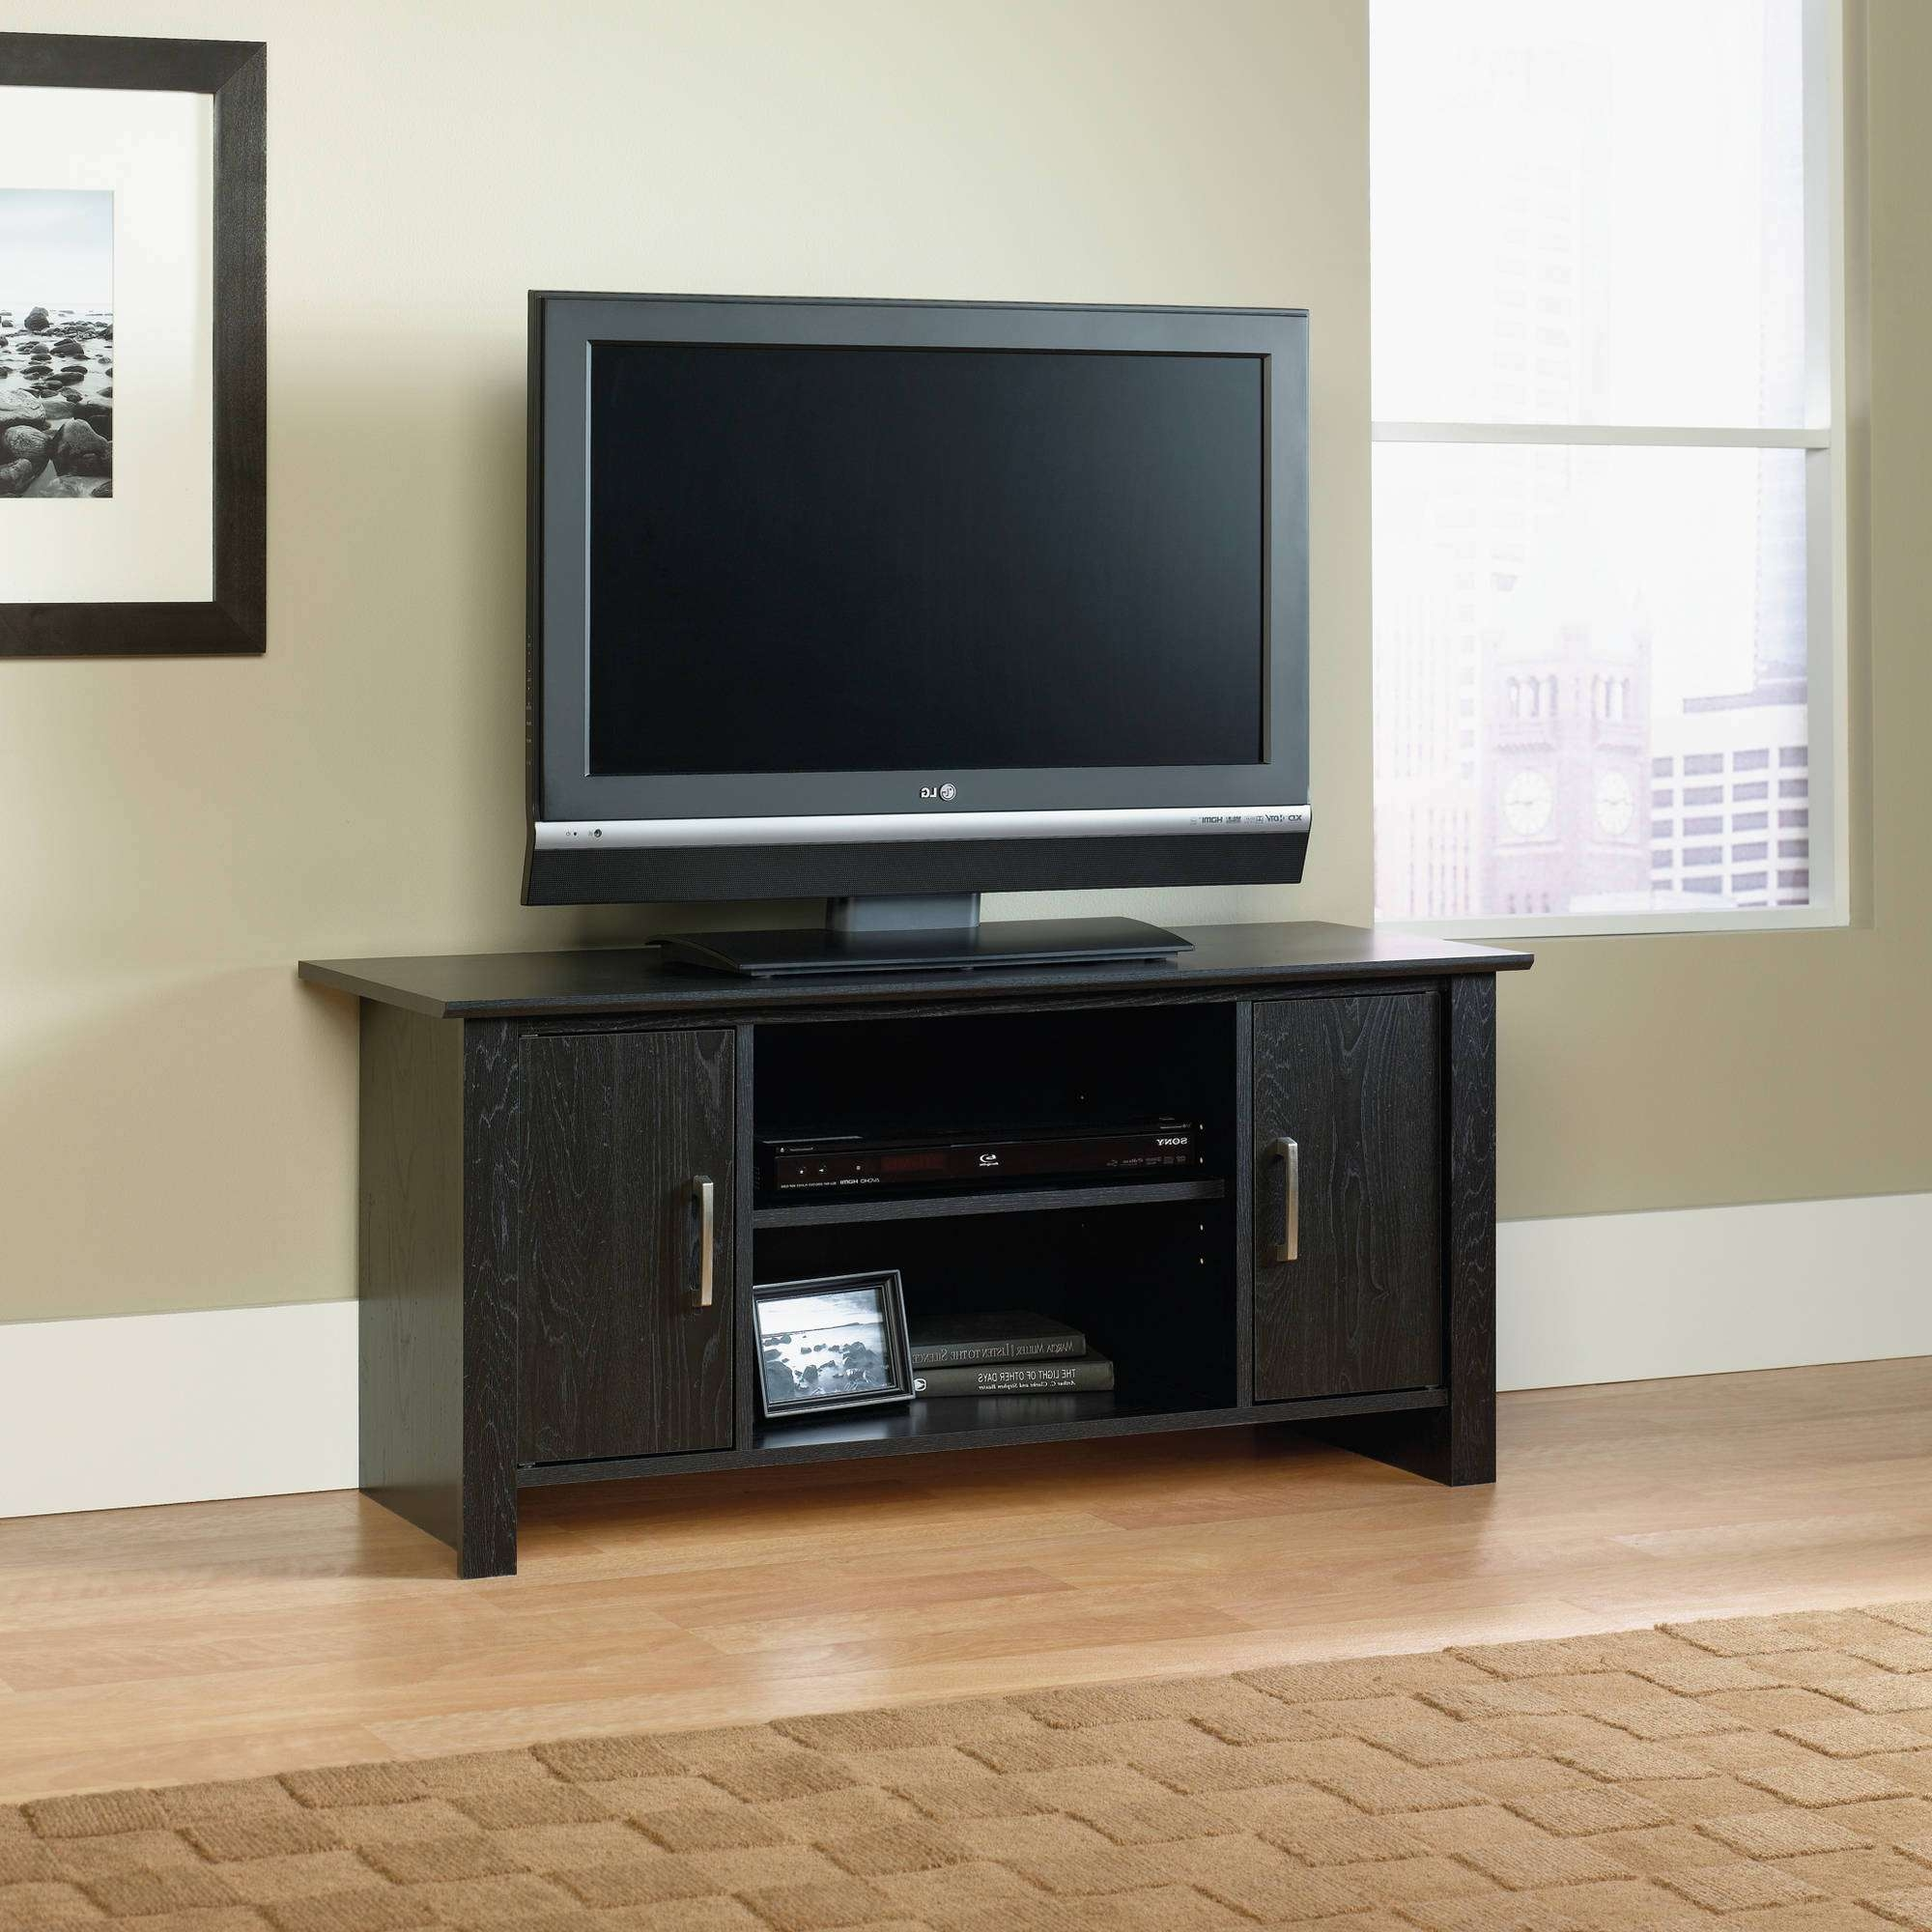 "Mainstays Tv Stand For Flat Screen Tvs Up To 47"", Multiple Finish Inside Corner Tv Stands For Flat Screen (View 13 of 15)"